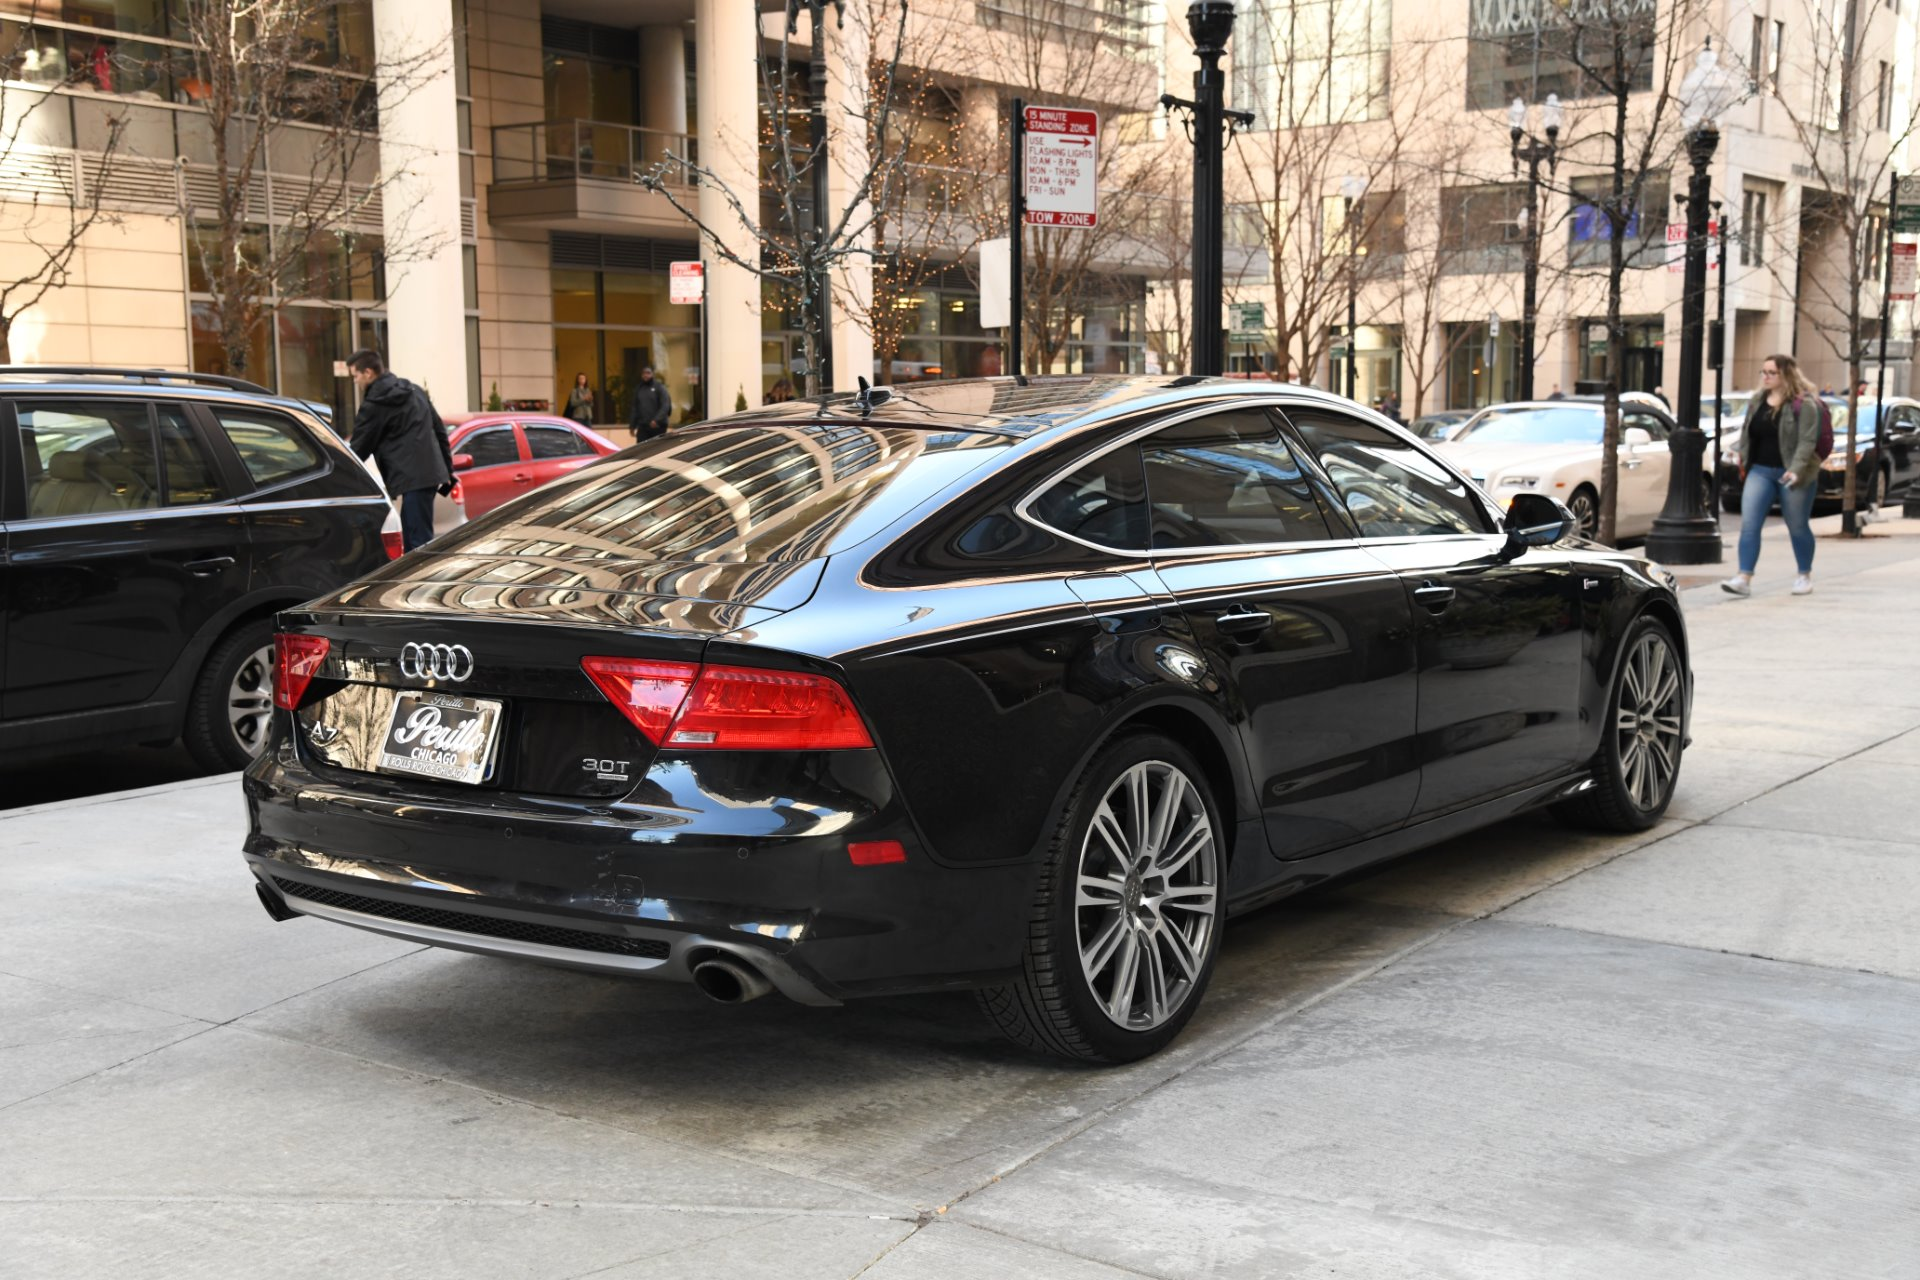 2012 audi a7 3 0t quattro prestige stock 41064 for sale near chicago il il audi dealer. Black Bedroom Furniture Sets. Home Design Ideas